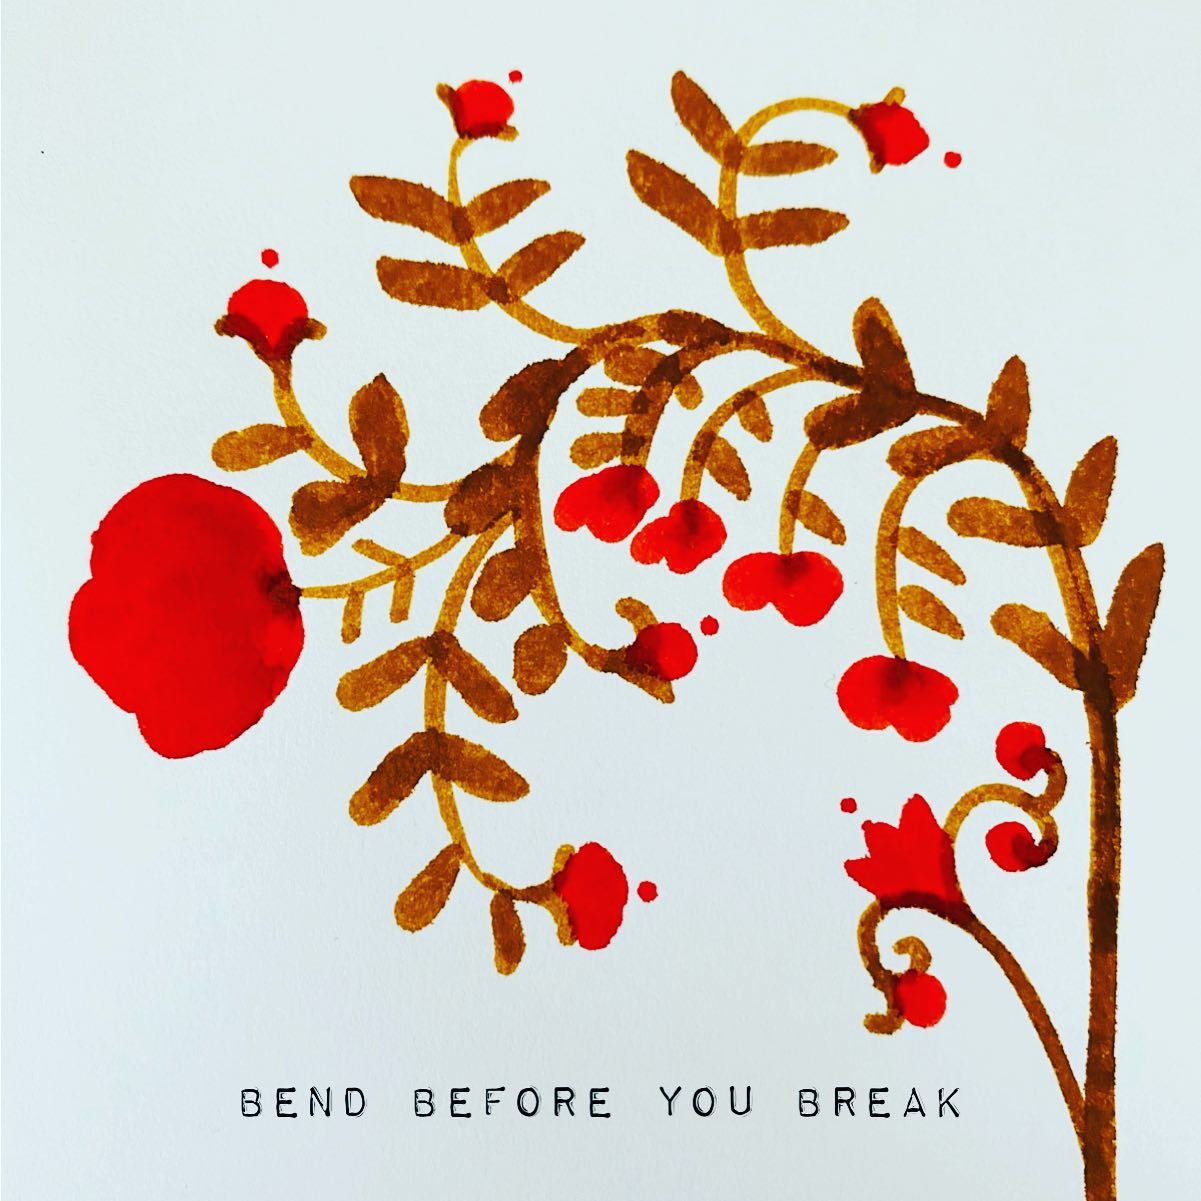 Be like a tree. Be rooted. Be grounded. Bend before you break.